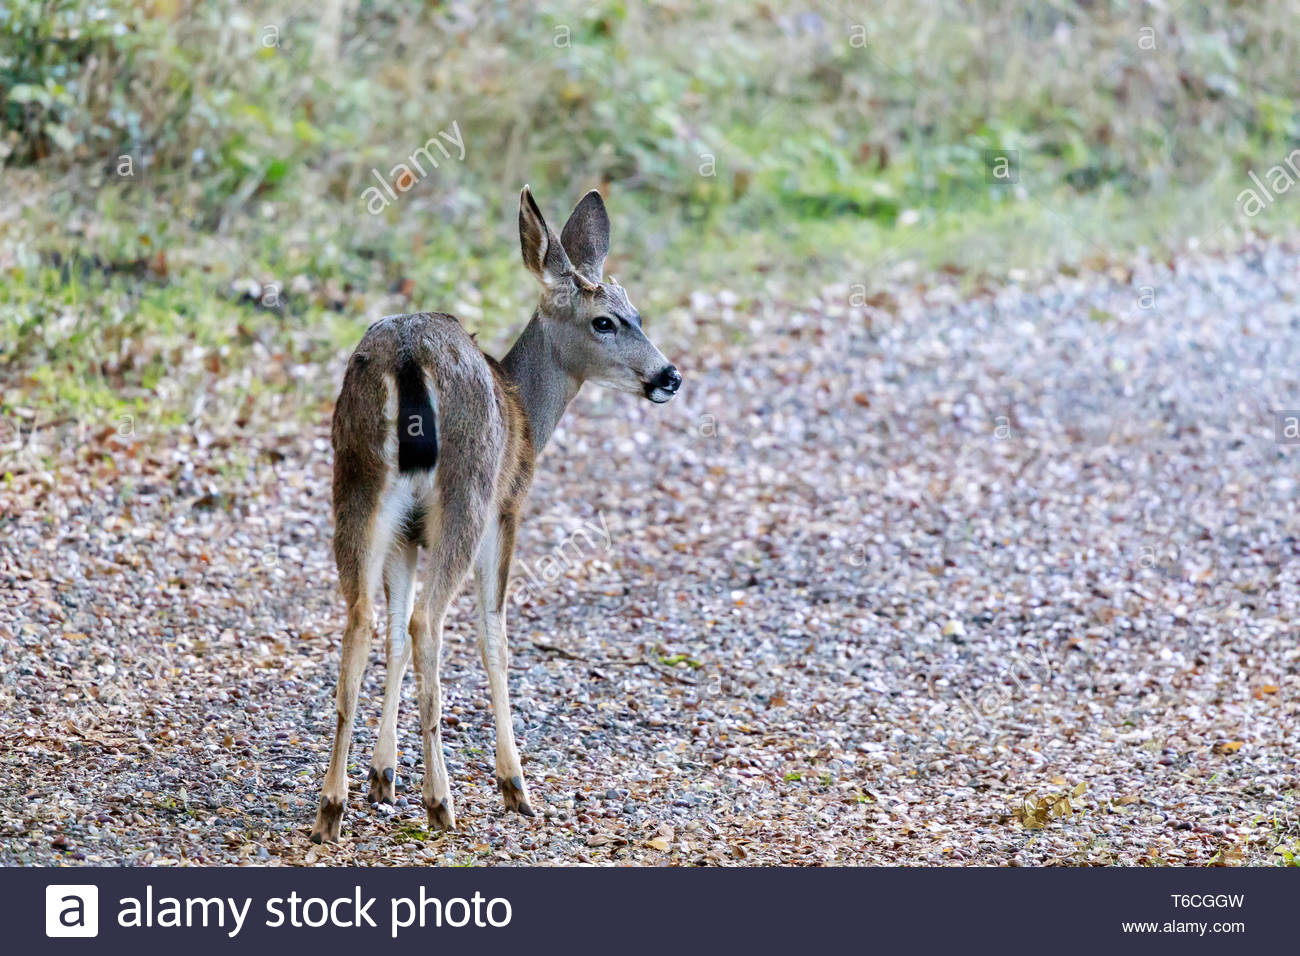 Cautious Black-tailed Deer Looking Back. - Stock Image